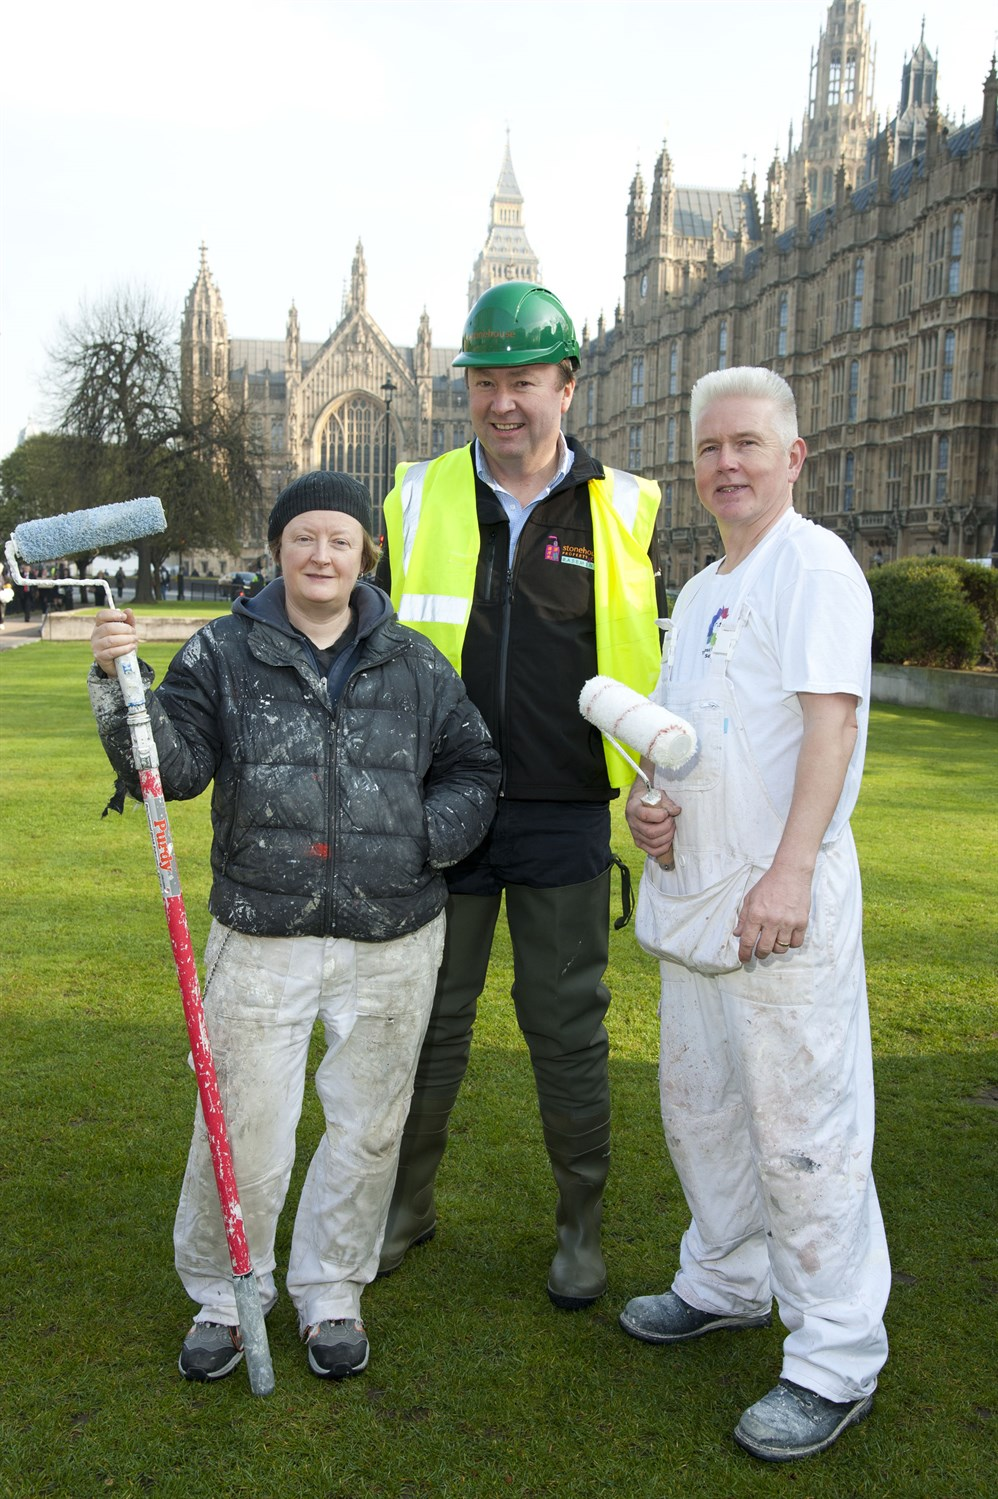 Tradesmen -westminster -portrait